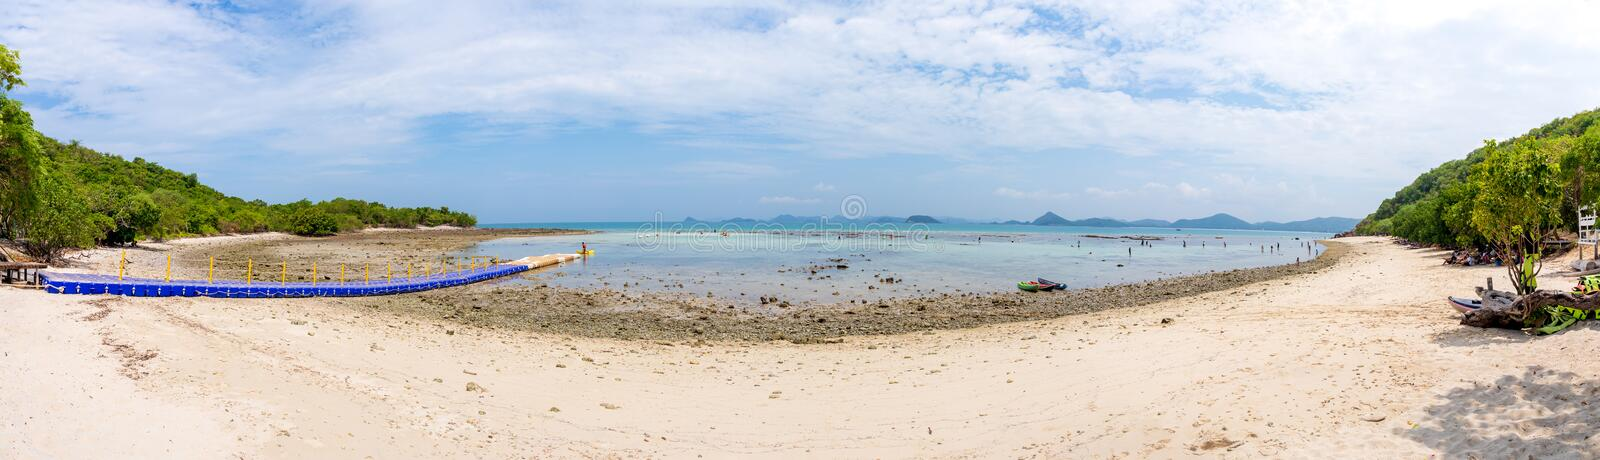 Panorama photo of Bay or sea beach of Koh Kam, Sattahip, Chonburi, Thailand. nature background. Koh Kam, Sattahip, Chonburi, Thailand, 20 May 2019: Panorama stock photos